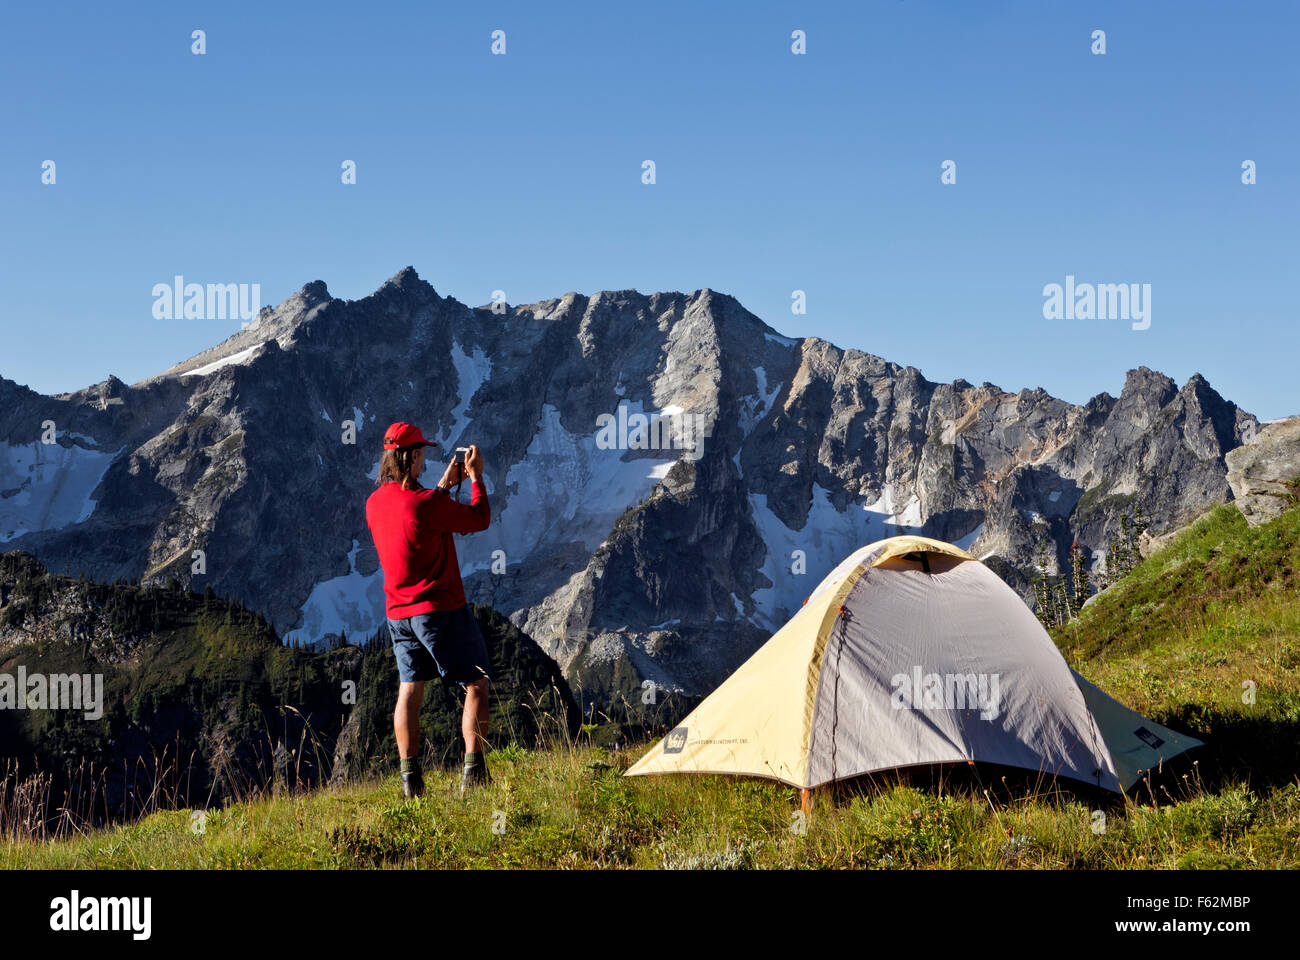 WA10926-00...WASHINGTON - Early morning photography at campsite on Liberty Cap in the Glacier Peak Wilderness Area. - Stock Image